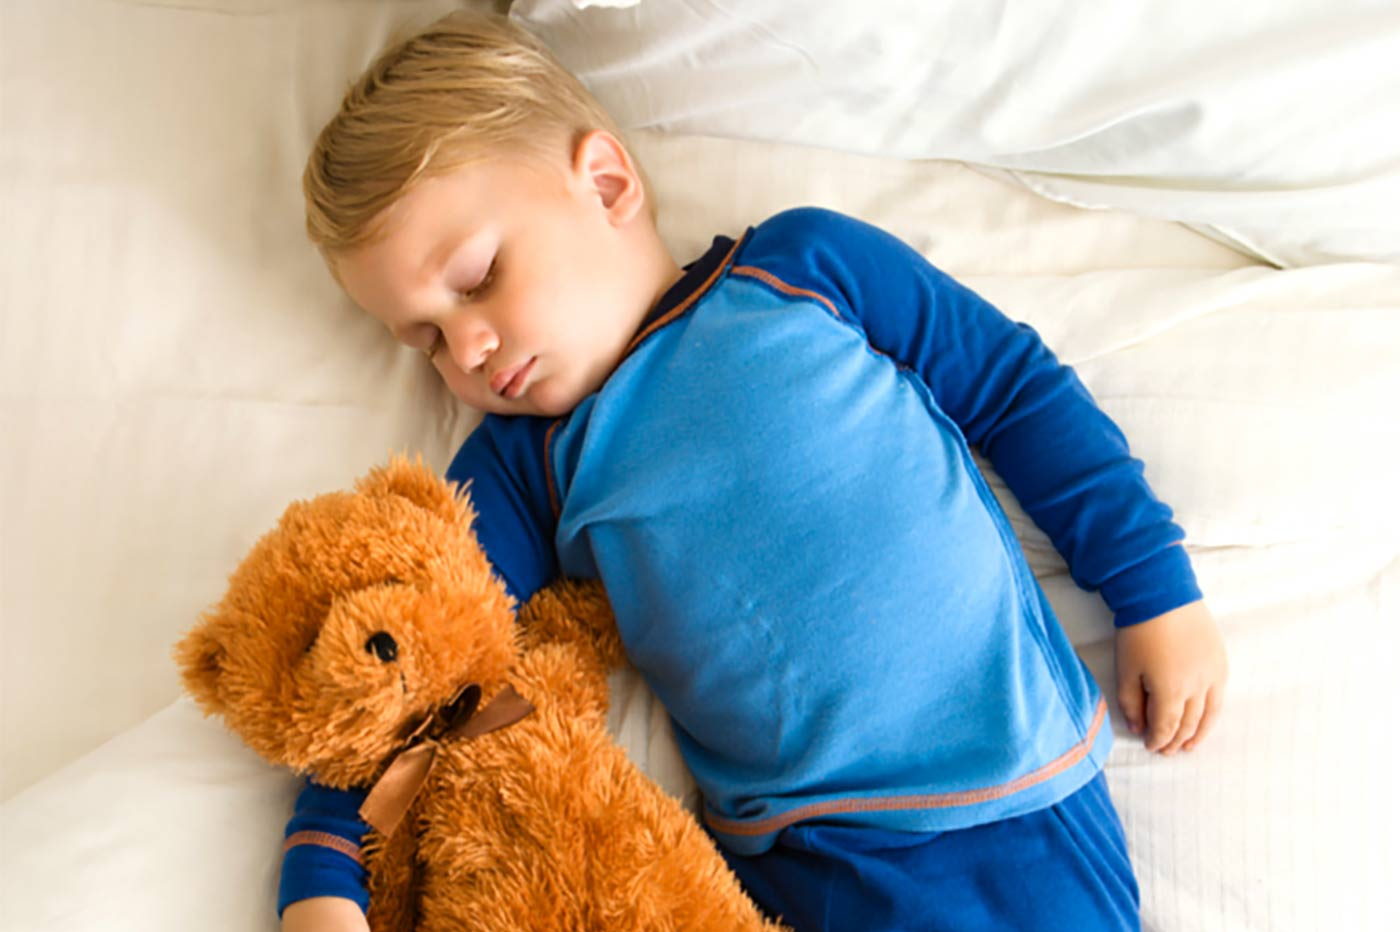 Little boy sleeping with a teddy bear